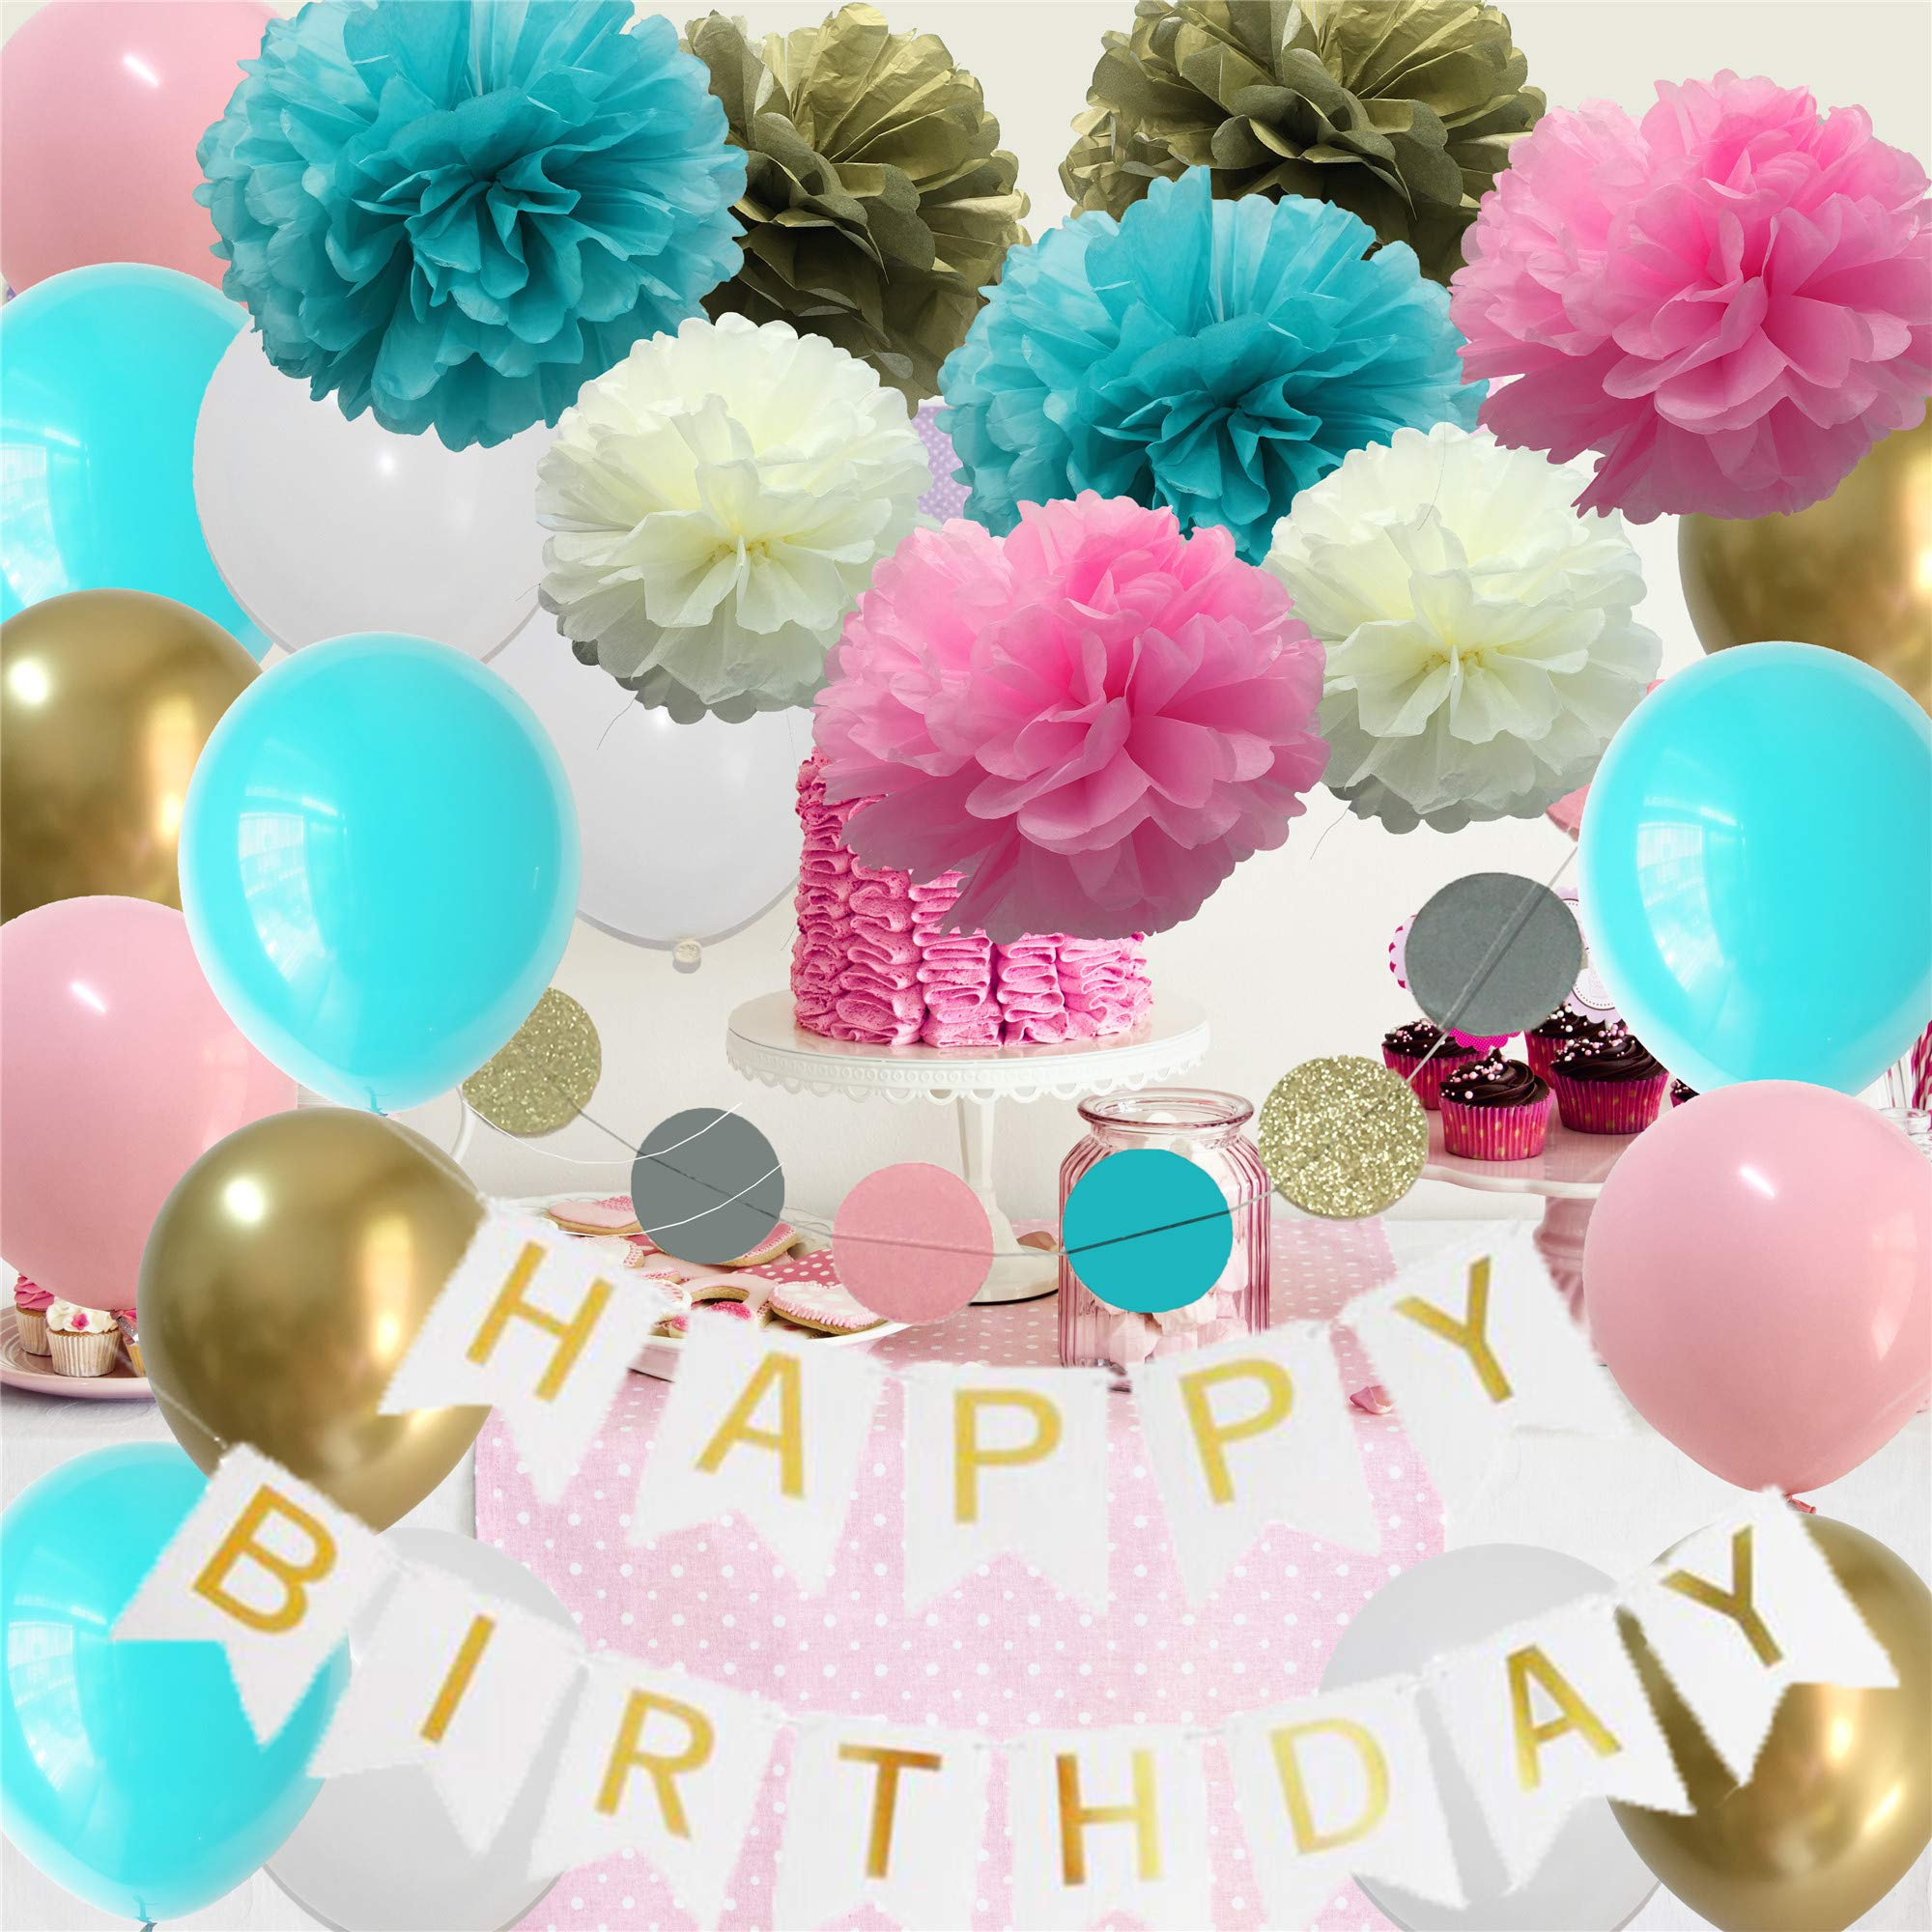 Happy Birthday Decorations for Girls- Pink Teal Gold Birthday Party Supplies for Little Teen Girls Sweet B-Day Décor Kit(Teal Pink White Gold)